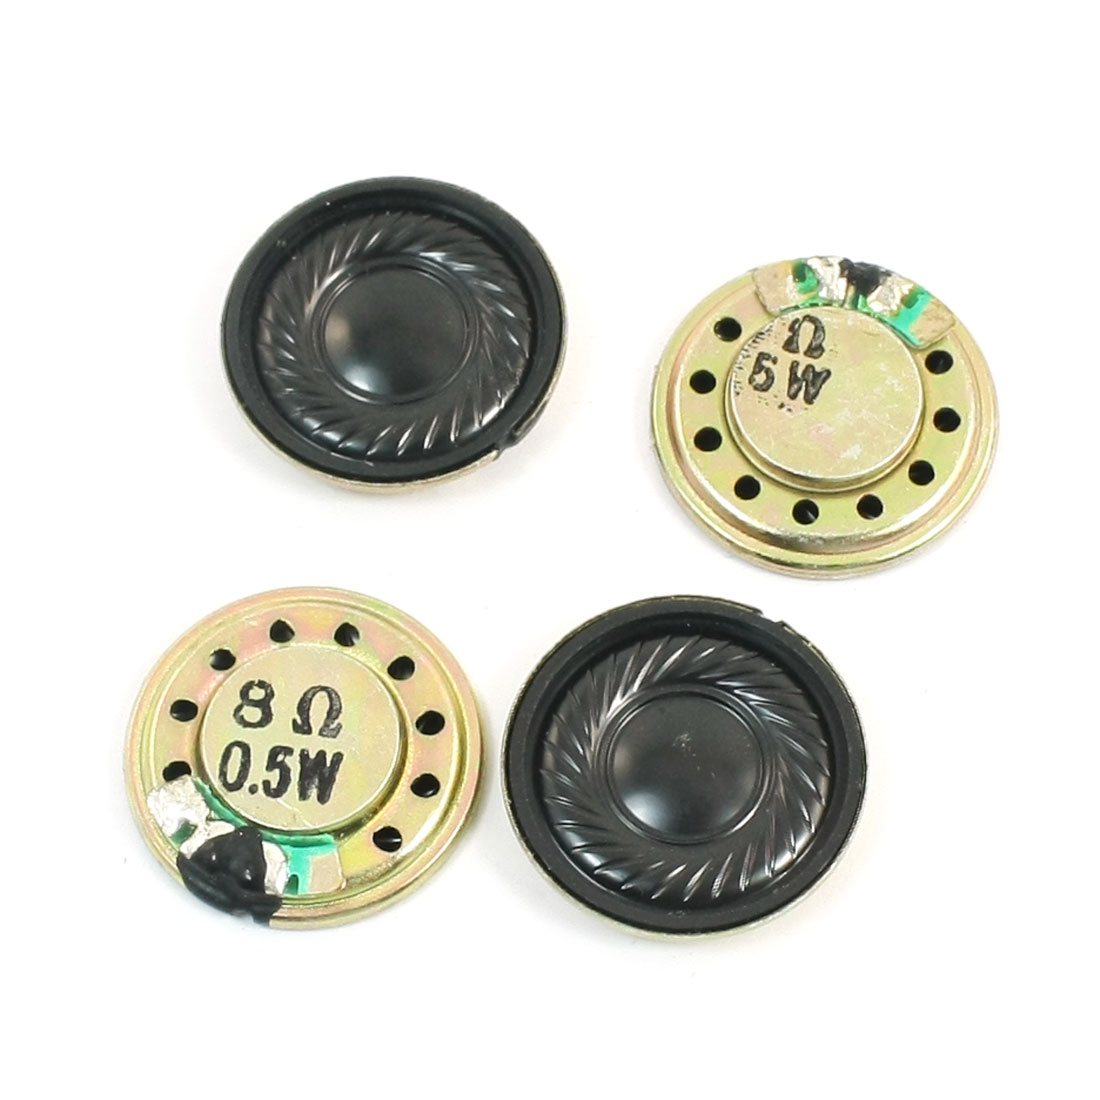 Music Player Part Round Metal Internal Magnetic Sealed Speaker 8 Ohm 0.5W 20mm Dia 4Pcs